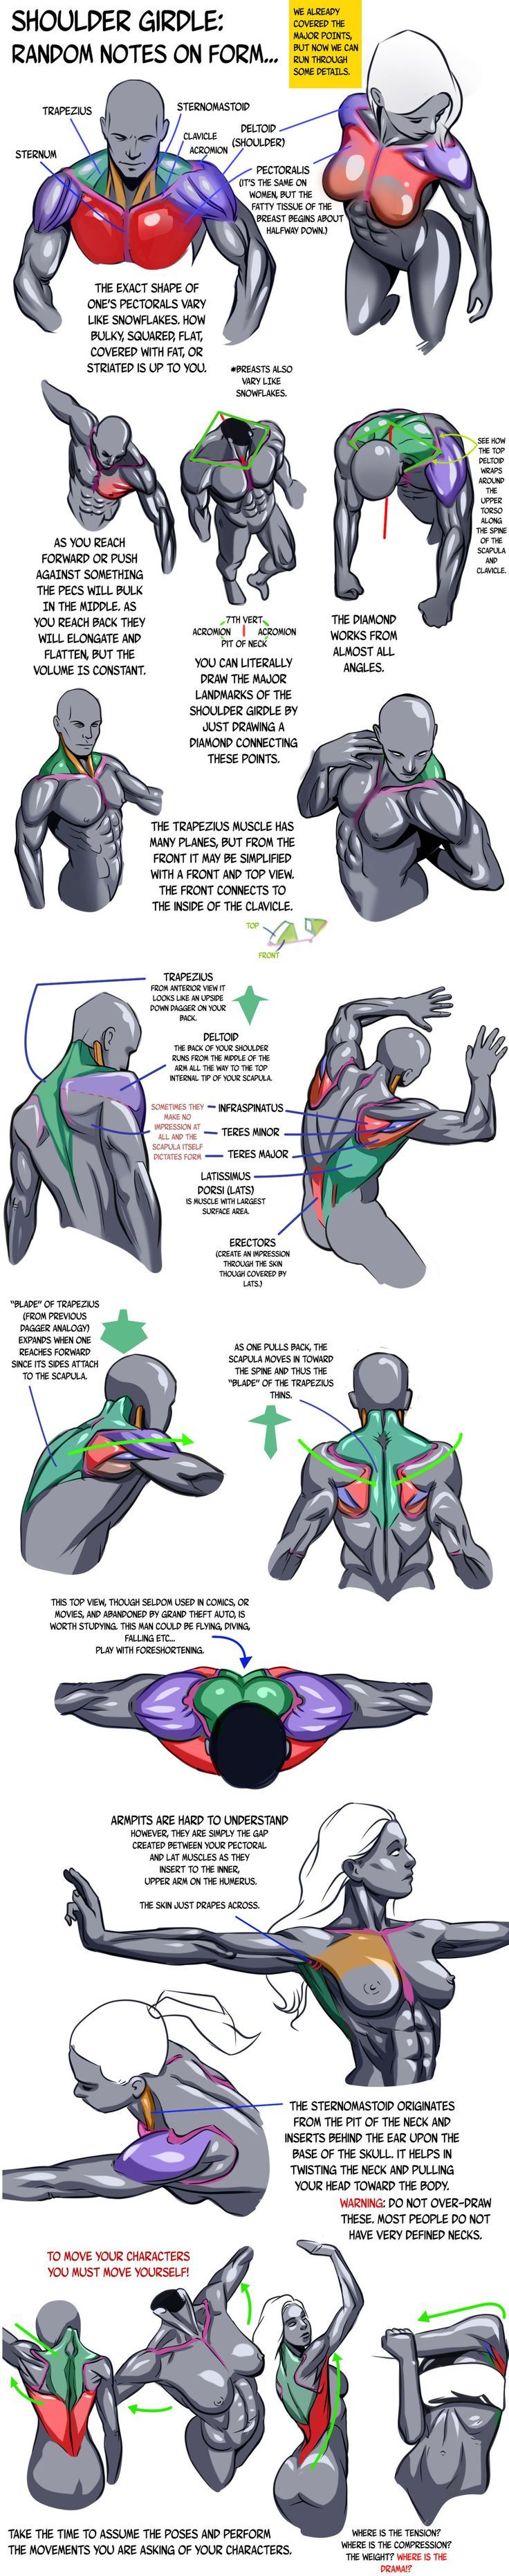 How to draw the shoulder girdle, courtesy of N3M0S1S.deviantart.com. I'm not keen on how shiny each of the forms are in this tutorial, but the notes are amazing.: